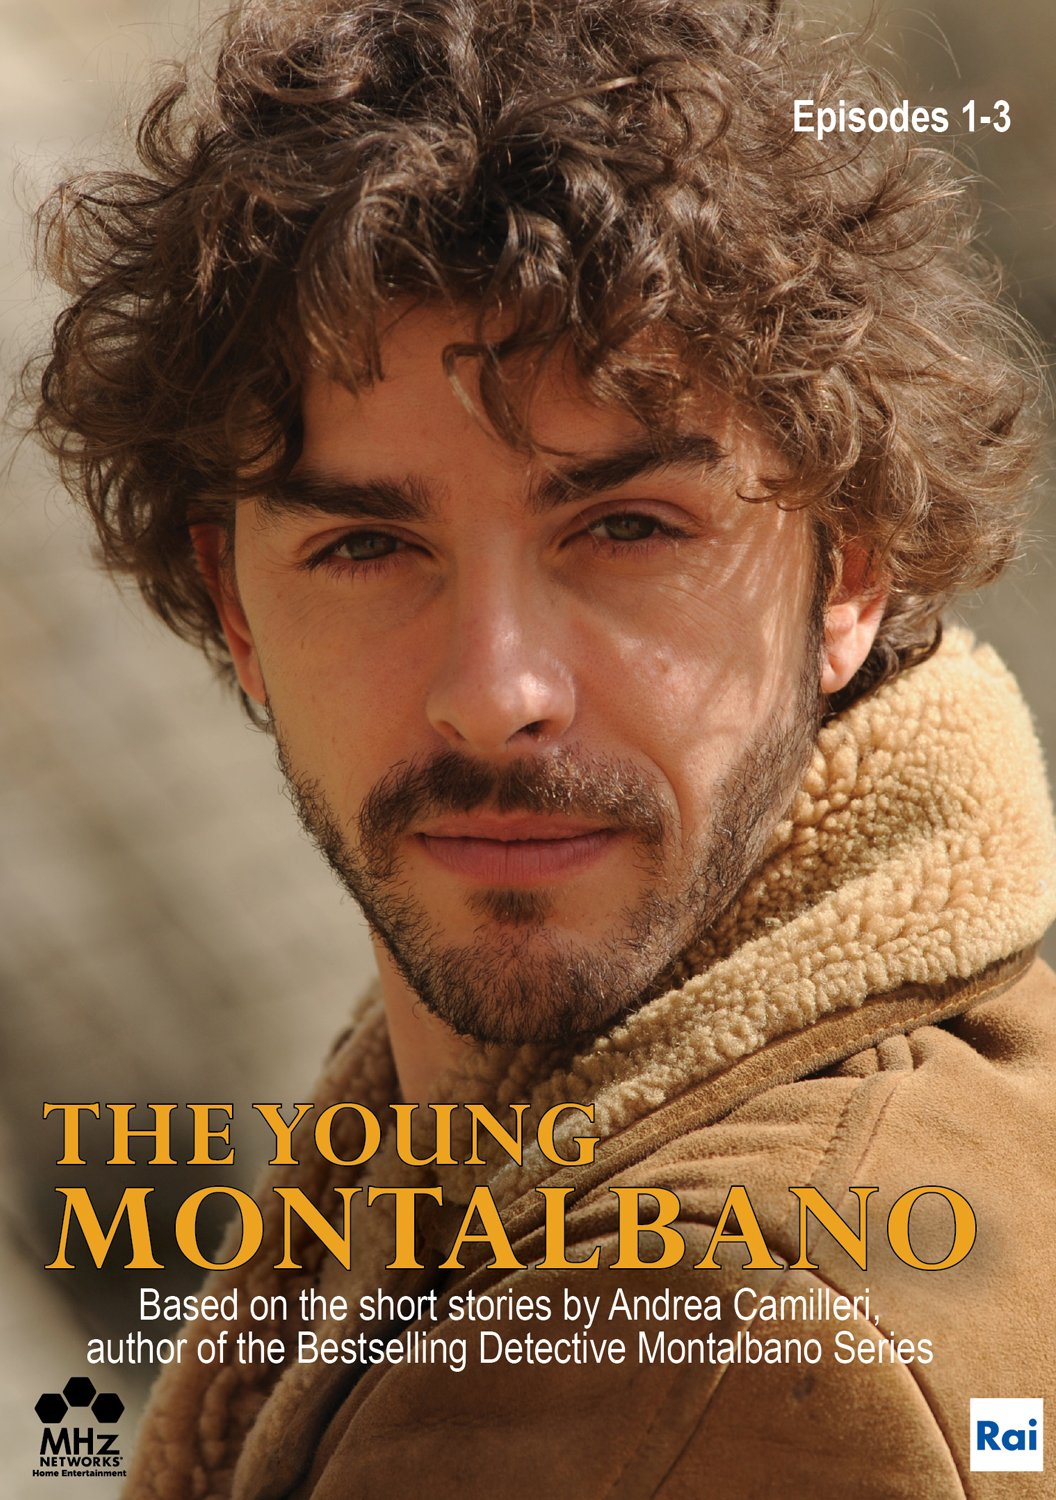 The Young Montalbano: Episodes 1-3 by MHz Networks